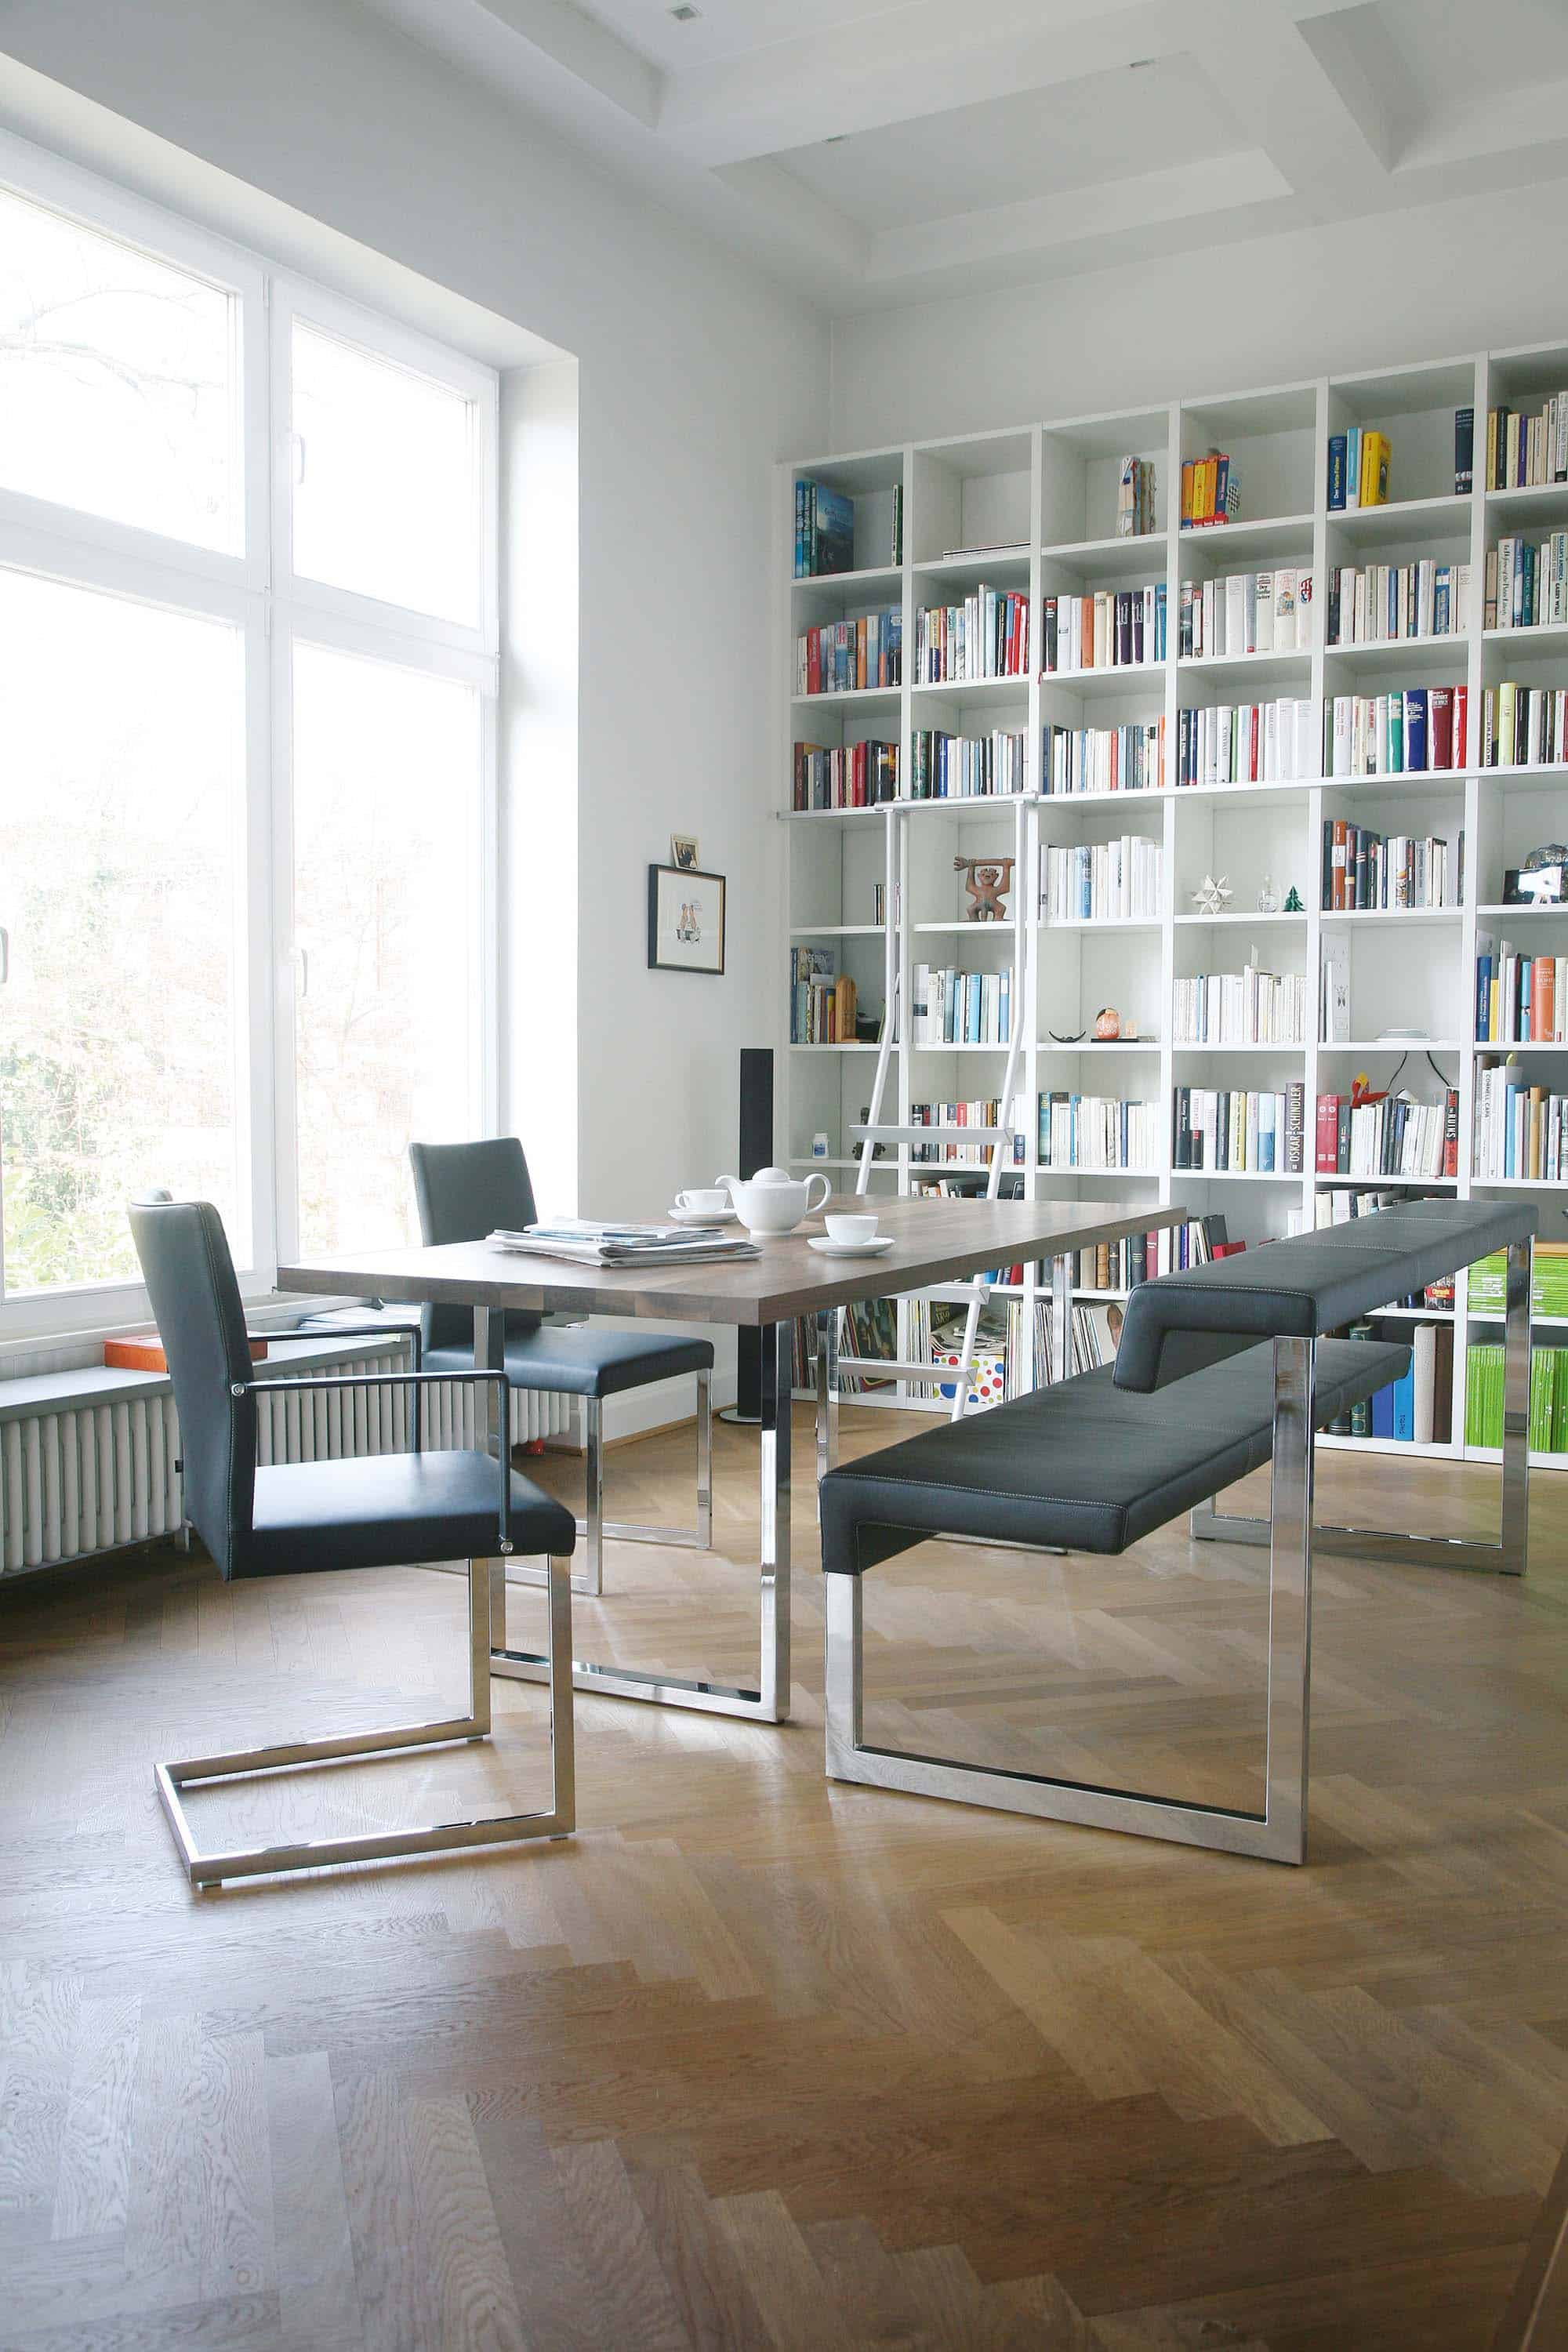 KFF Feel Chair and Gate Bench